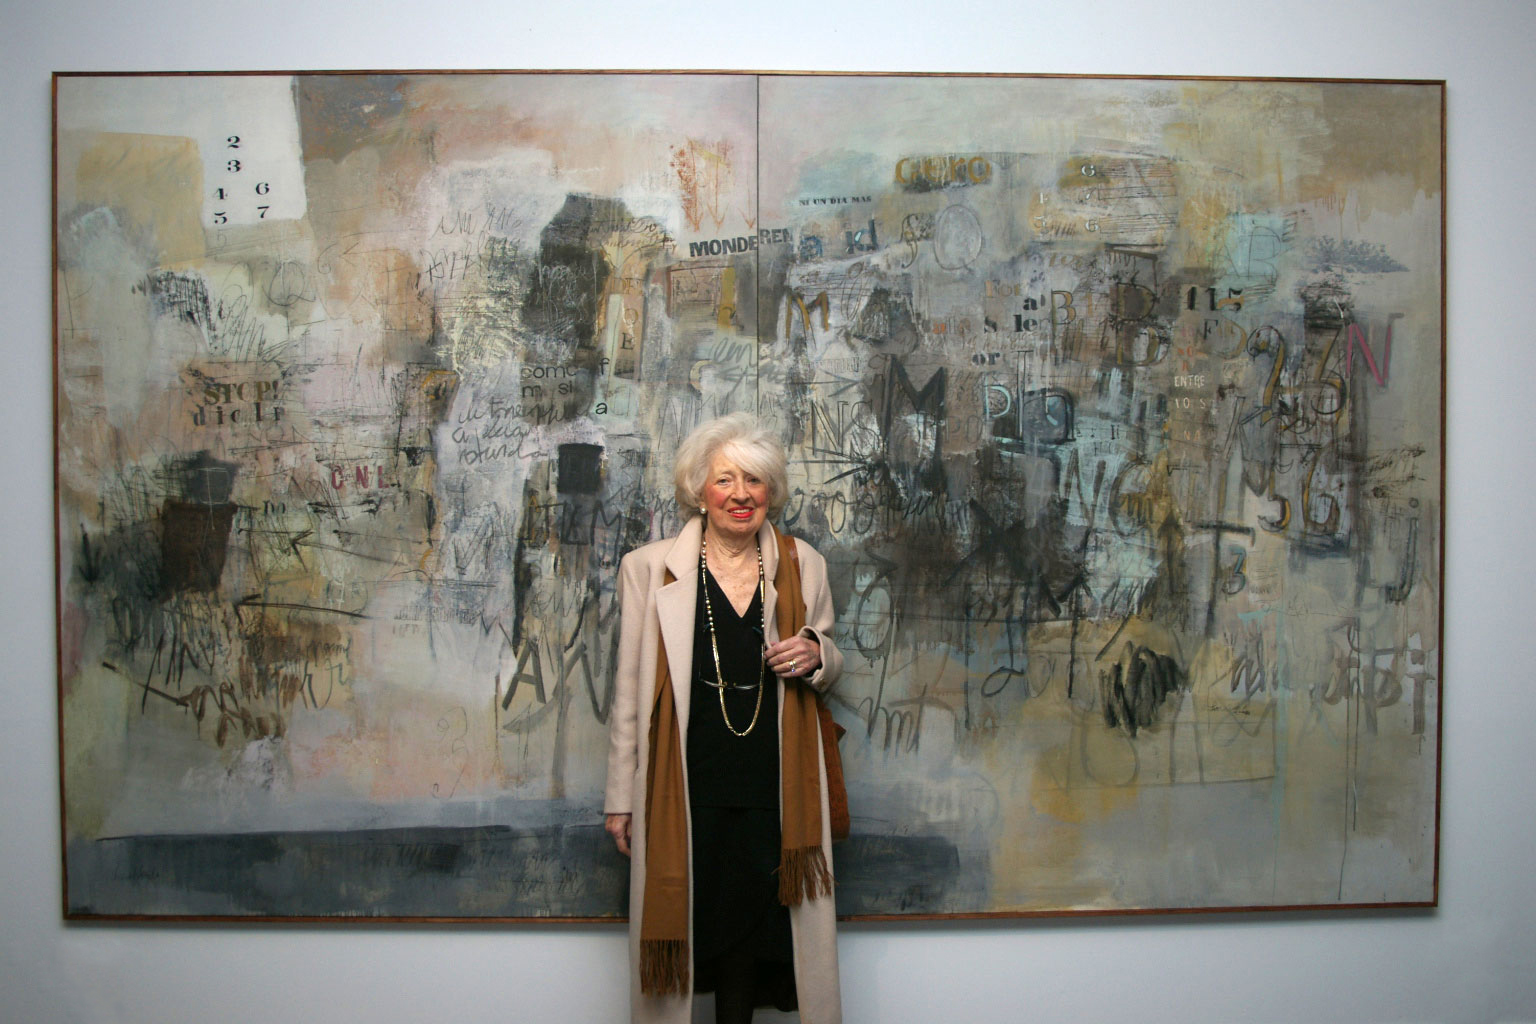 Sarah Grilo with one of her paintings,  Ni un día más  (1966), portrayed by his grandson, Mateo Fernández-Muro. Madrid, 2007  Photo: Mateo Fernández-Muro © The Estate of Sarah Grilo